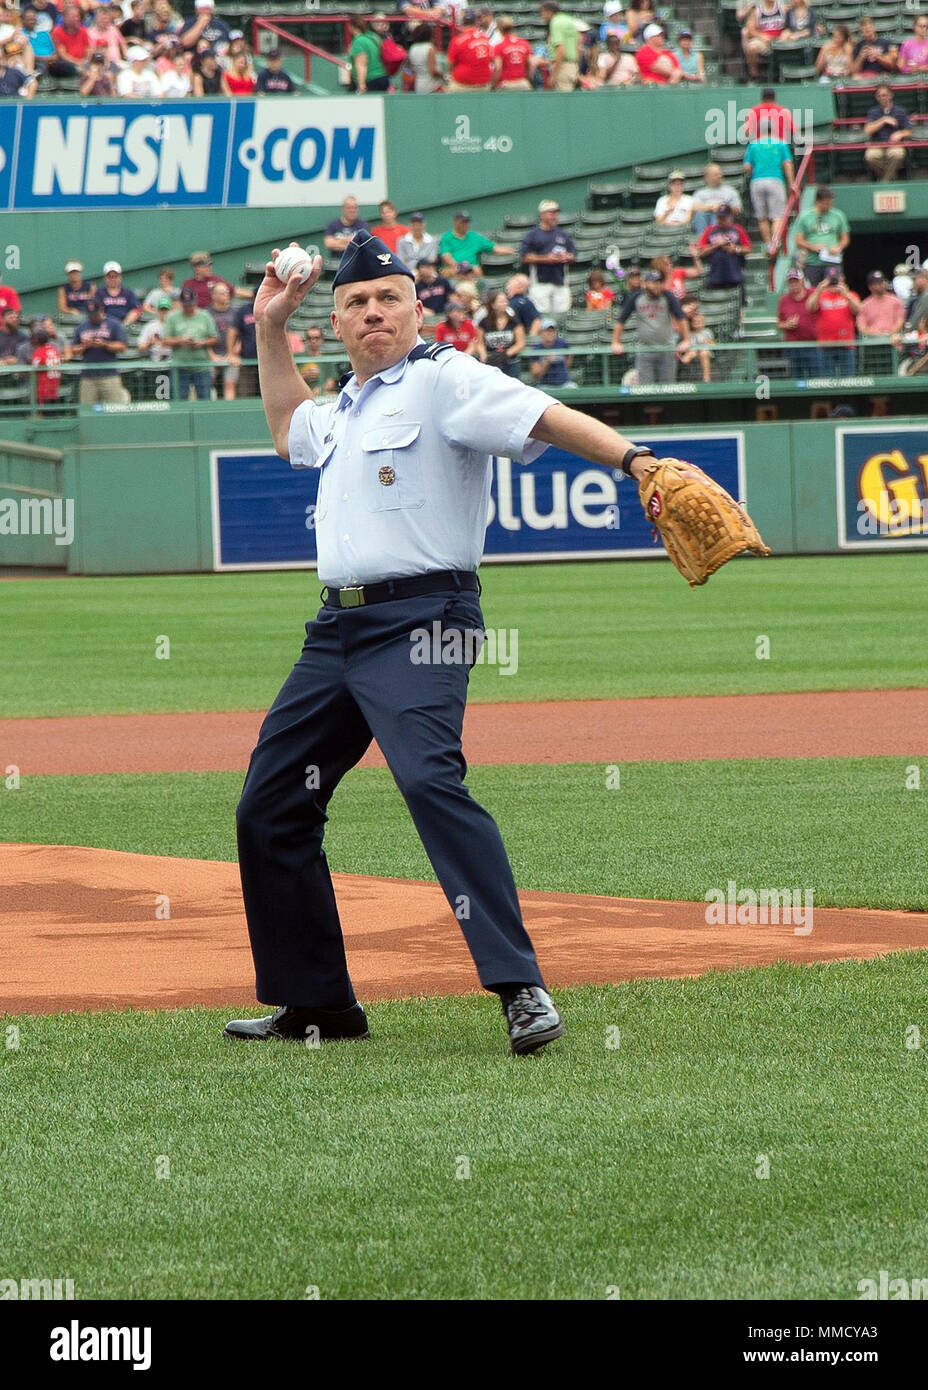 Col. Roman L. Hund, installation commander, throws the first pitch prior to a Boston Red Sox game at Fenway Park in Boston Sept. 14. Local service members were provided tickets to the game as part of the 'Tickets for Troops' program, in which season ticket holders donated their game tickets to active duty military members. (U.S. Air Force photo by Mark Herlihy) - Stock Image